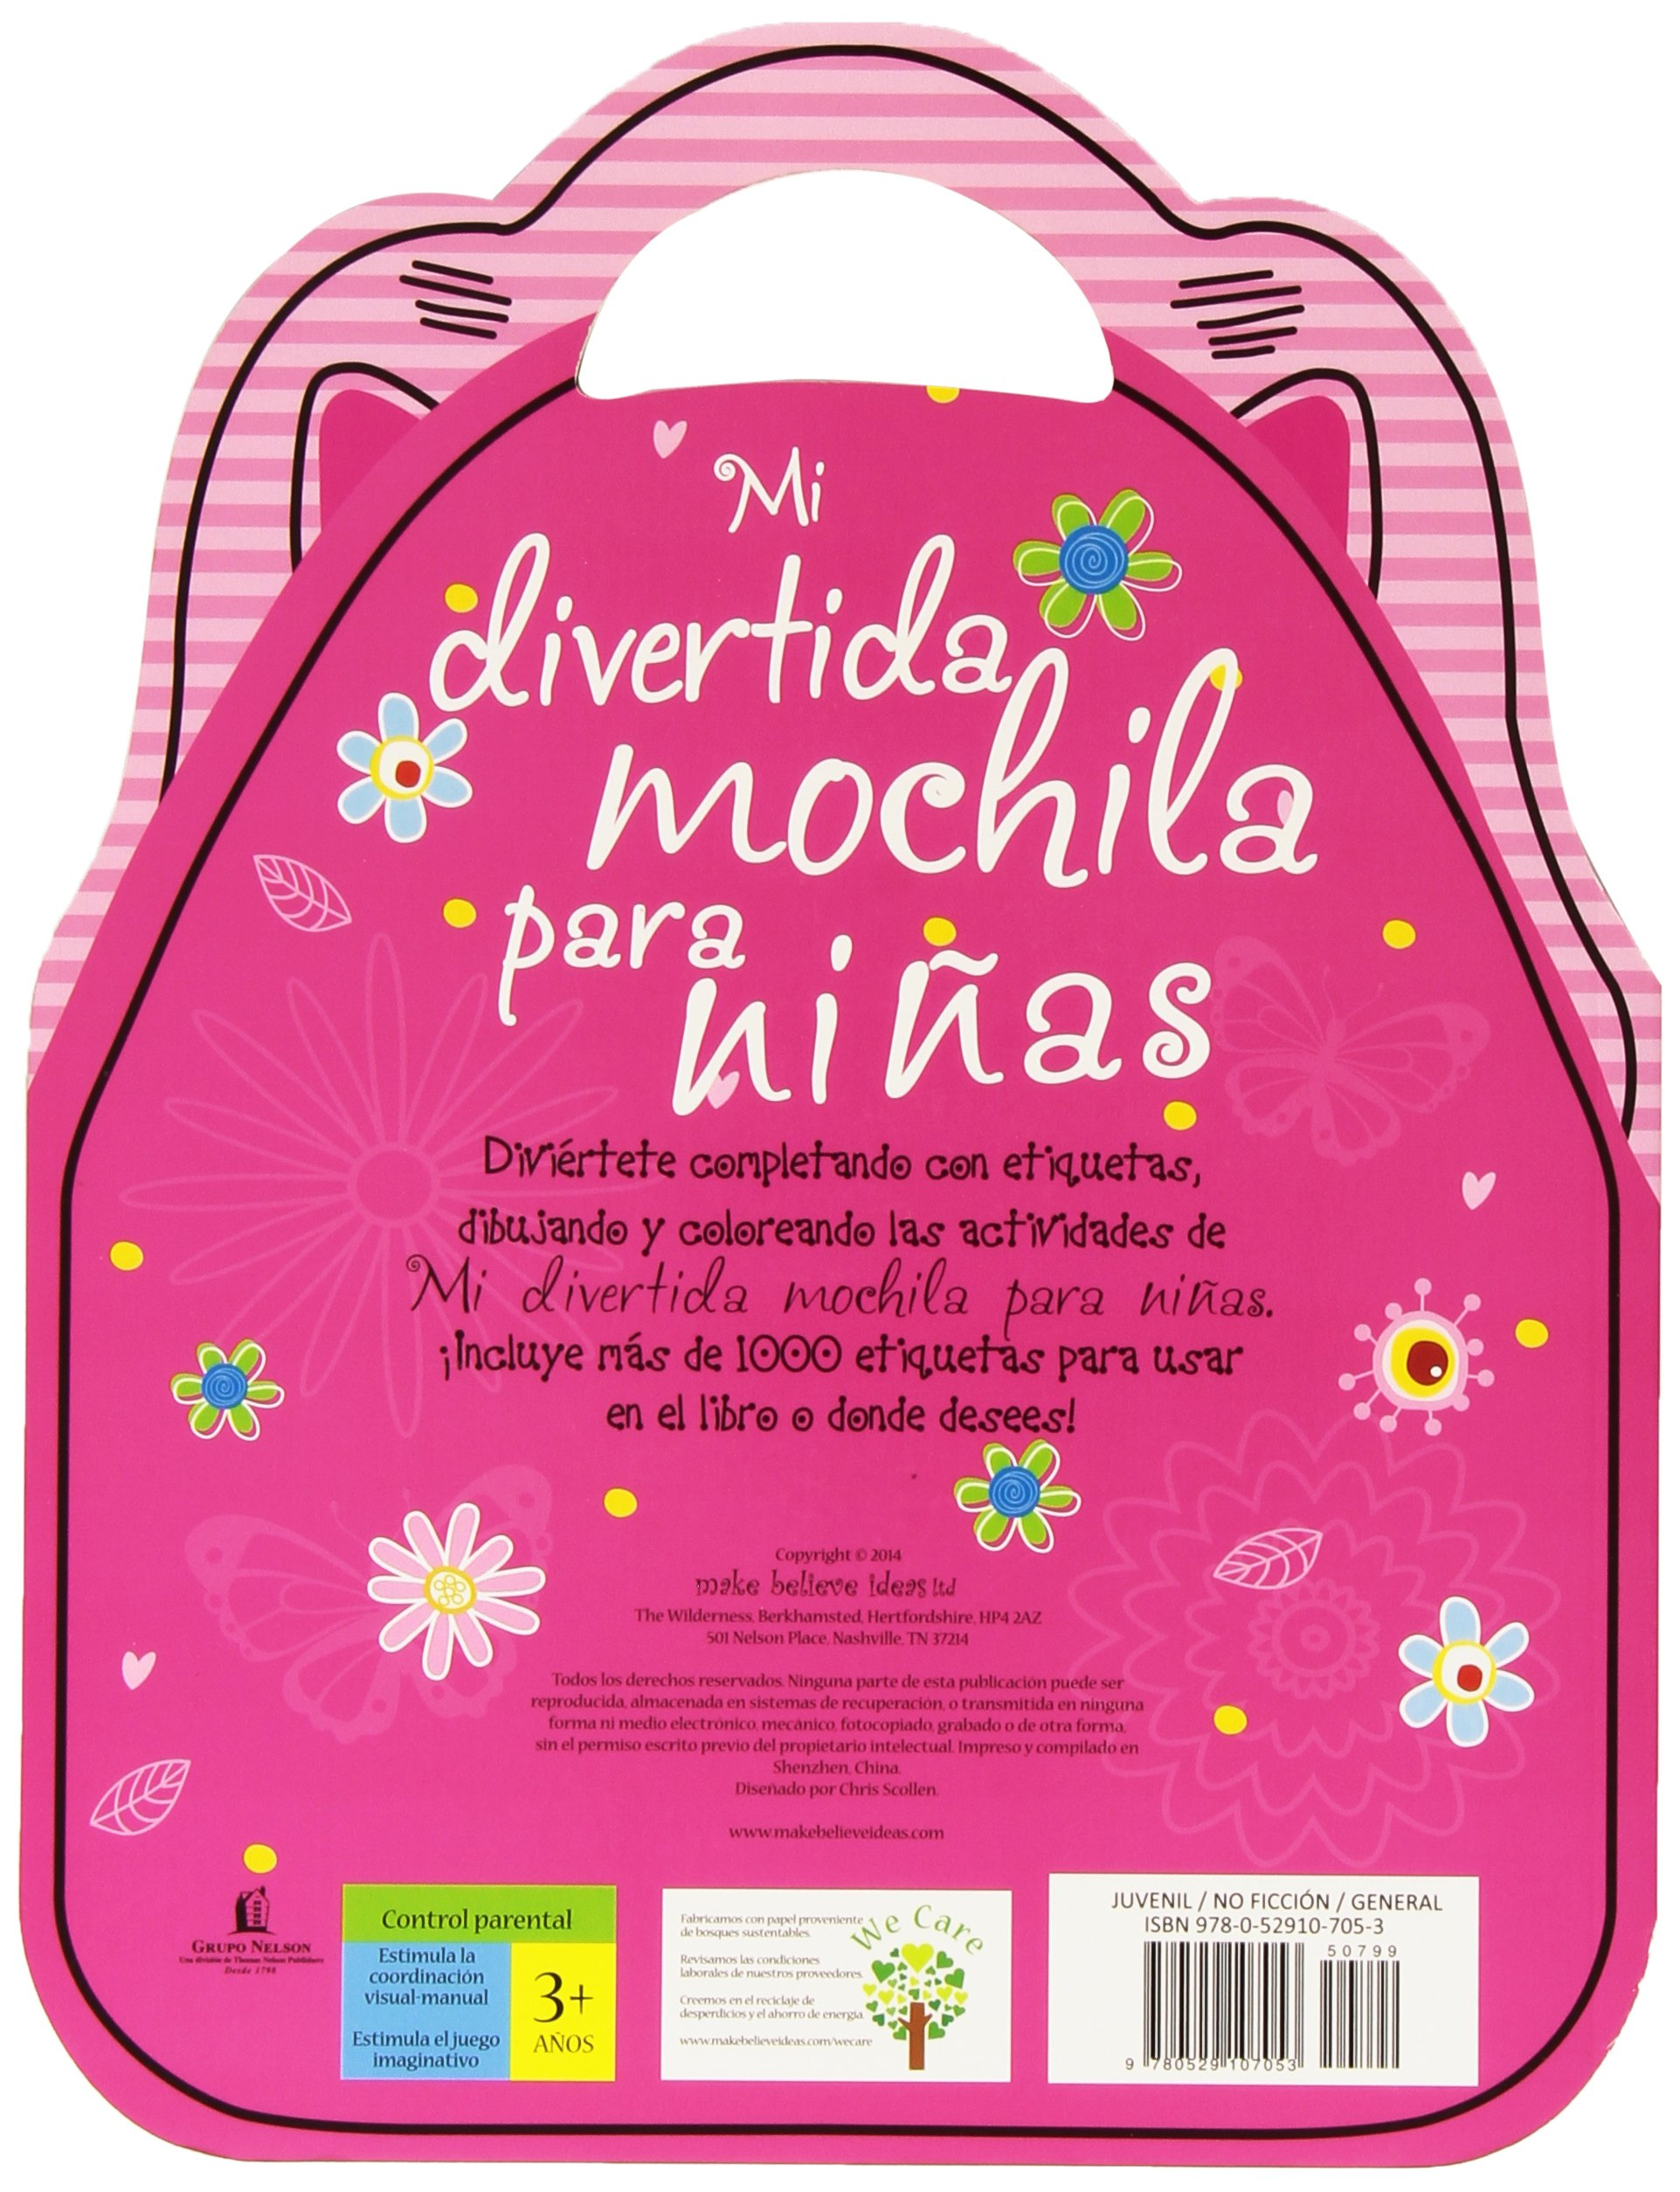 Mi divertida mochila para niñas (Spanish Edition): Thomas Nelson: 9780529107053: Amazon.com: Books